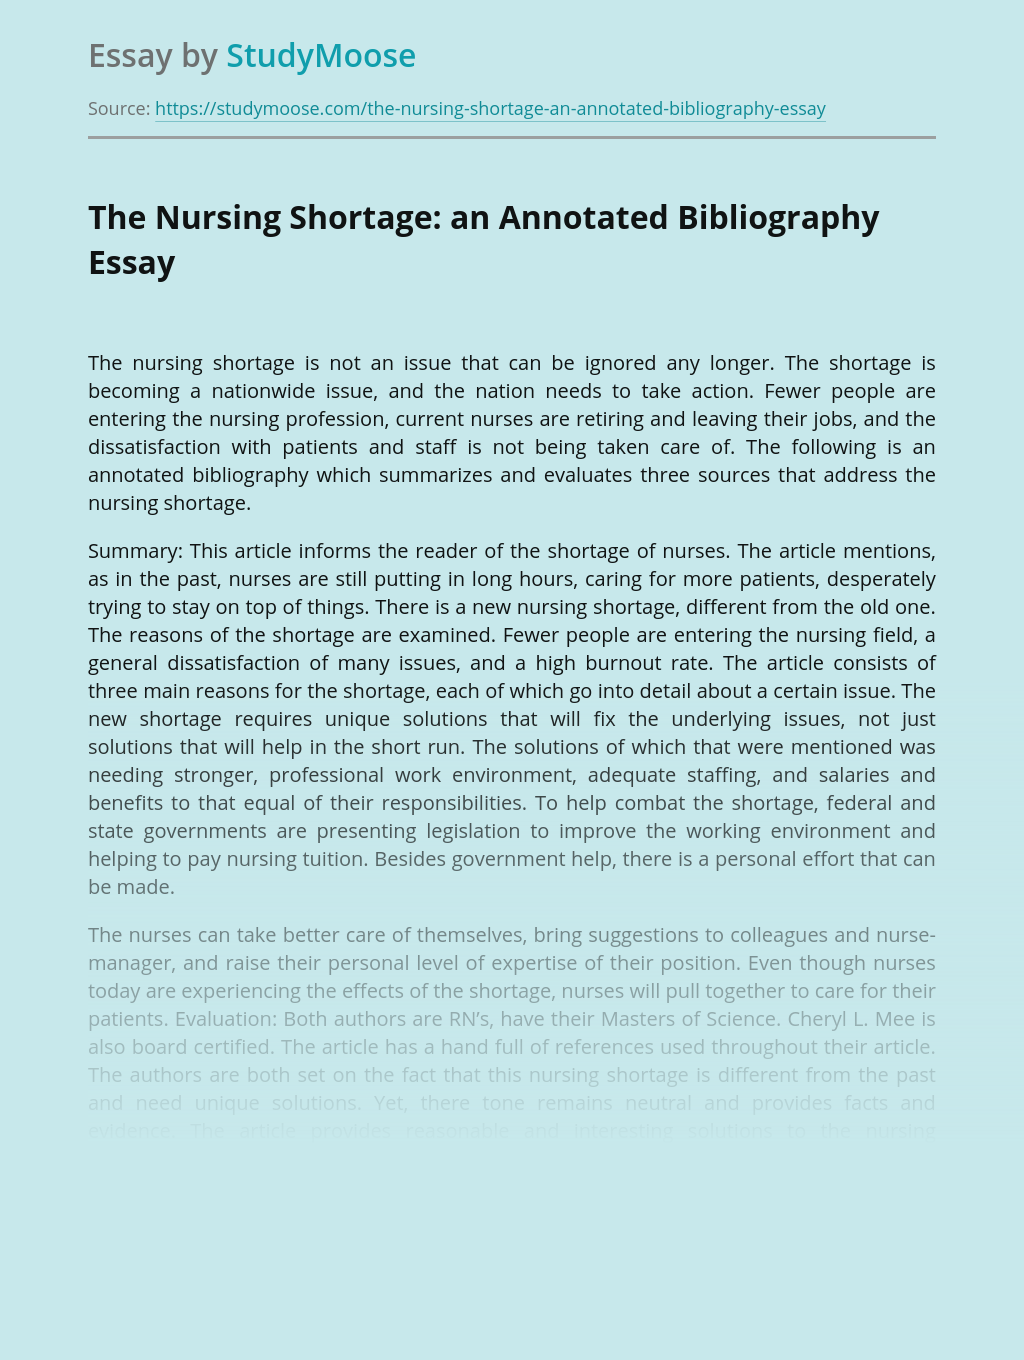 The Nursing Shortage: an Annotated Bibliography